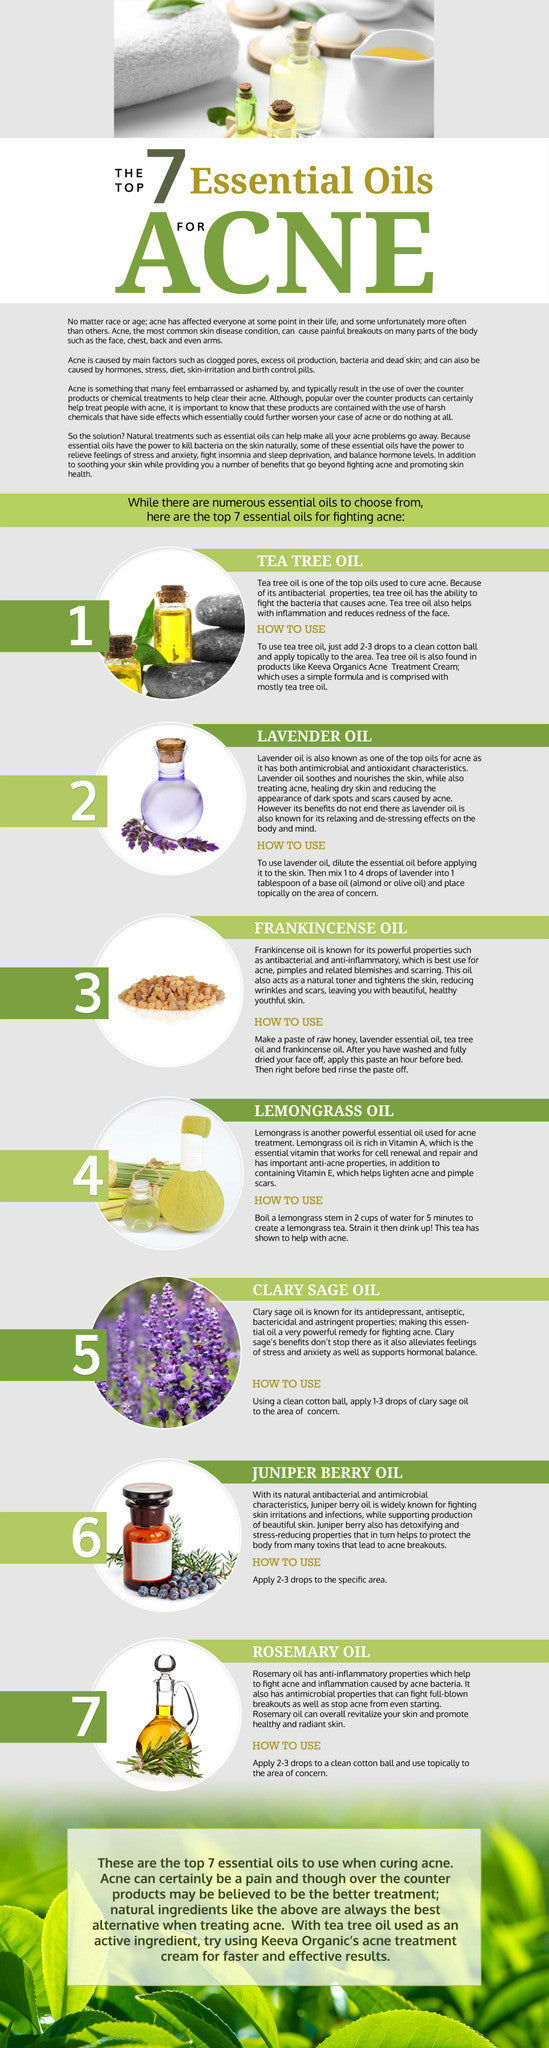 Top 7 Essential Oils for Acne Infographic